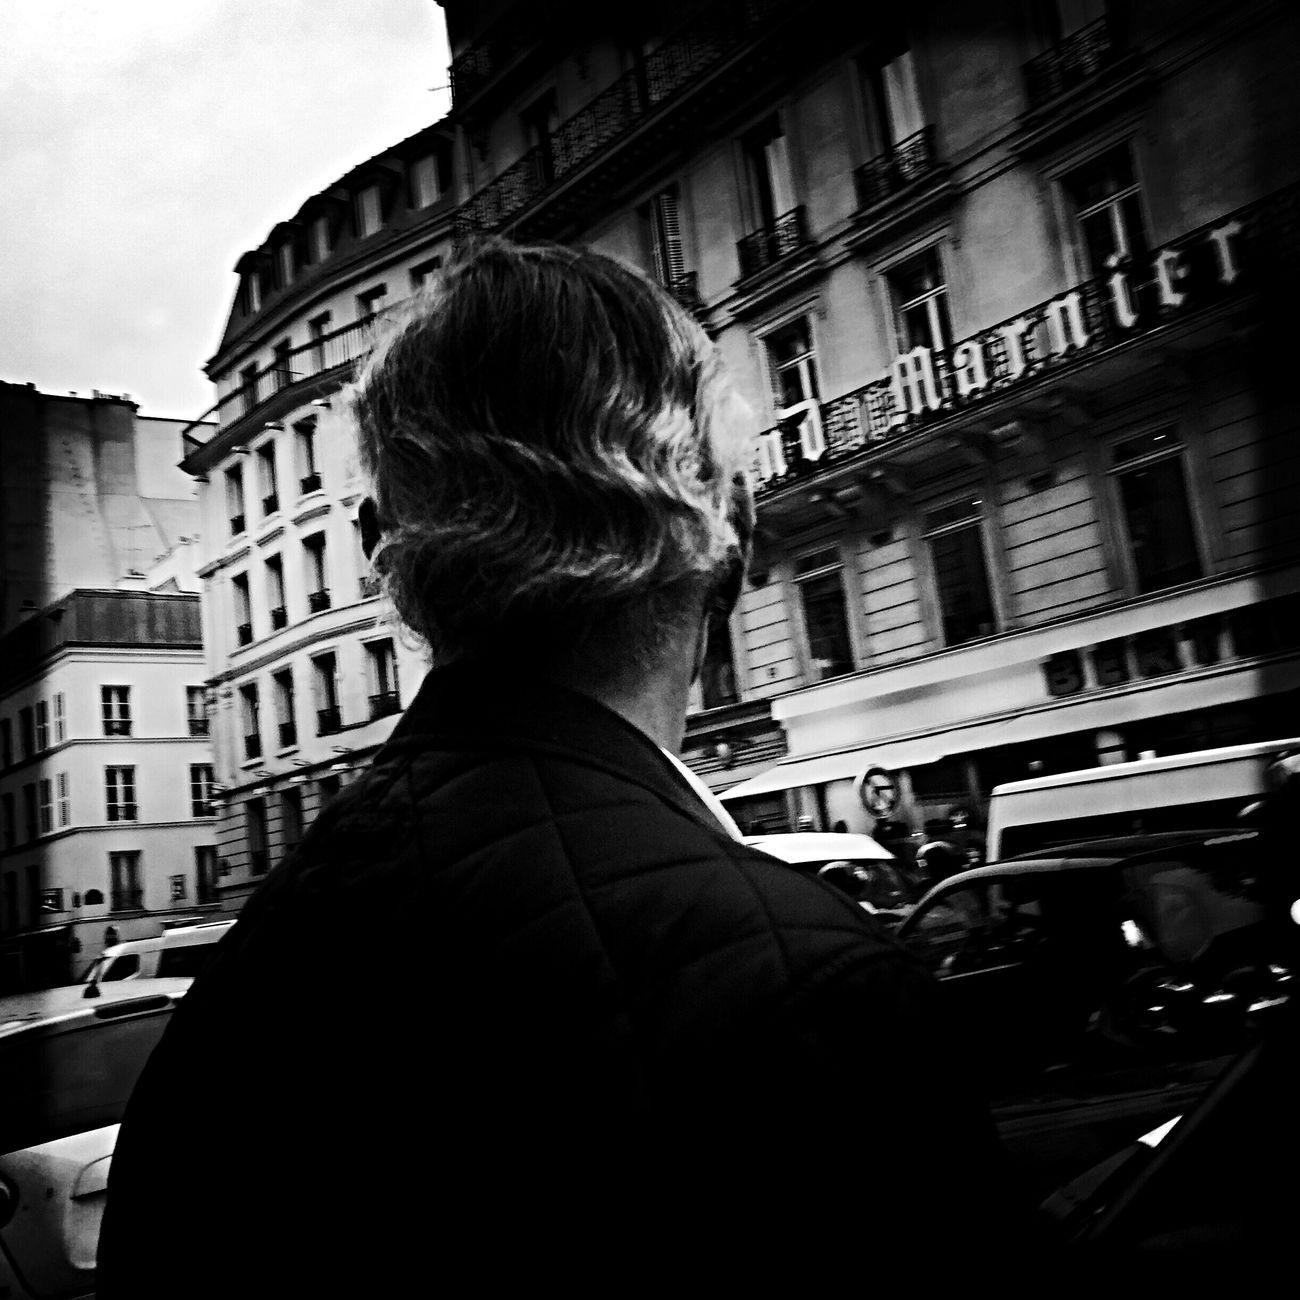 Paris Steetphotography Street